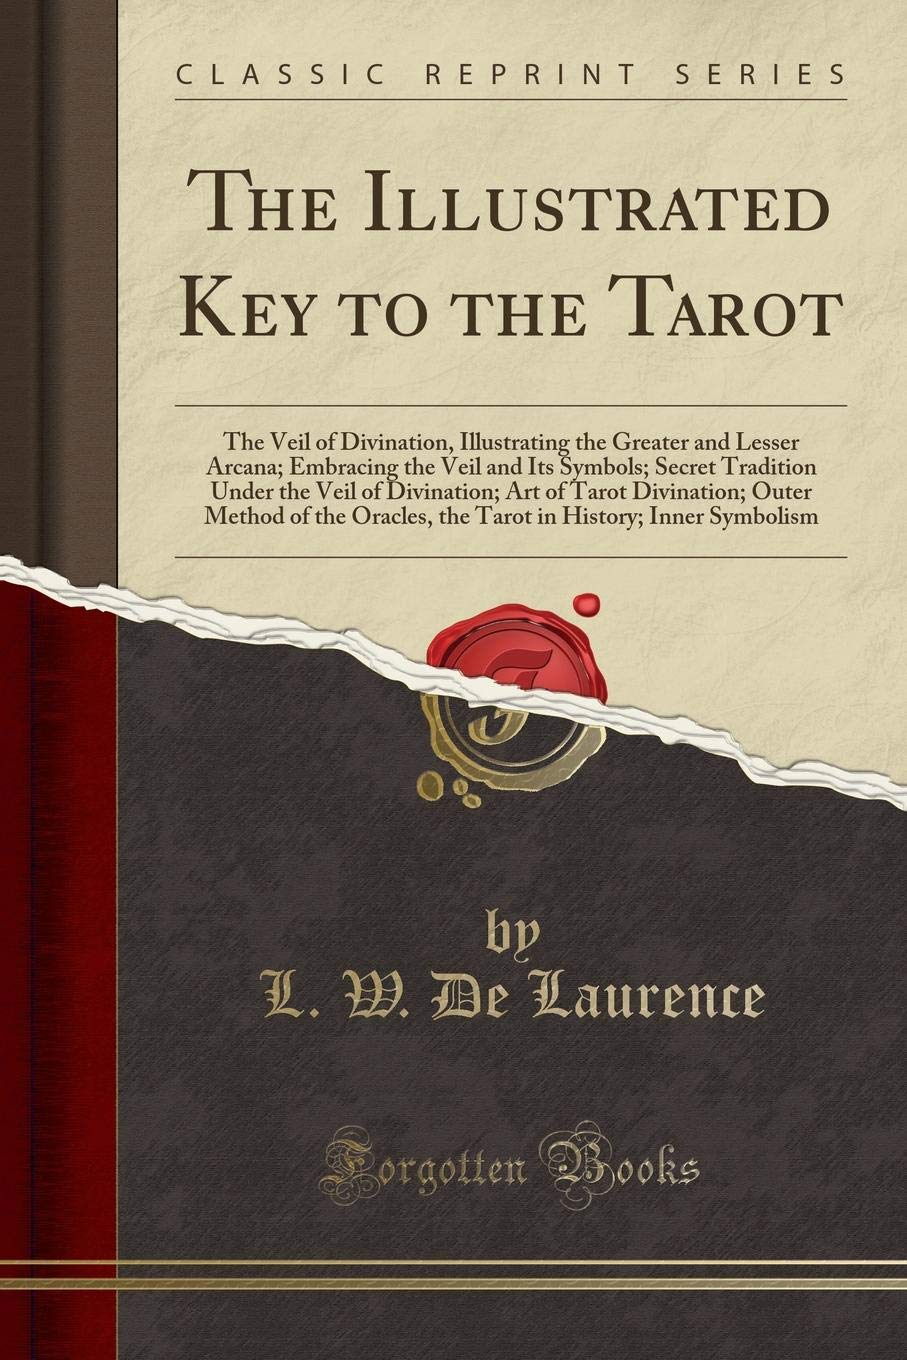 The Illustrated Key to the Tarot: The Veil of Divination, Illustrating the Greater and Lesser Arcana; Embracing the Veil and Its Symbols; Secret ... Outer Method of the Oracles, the Tarot in His pdf